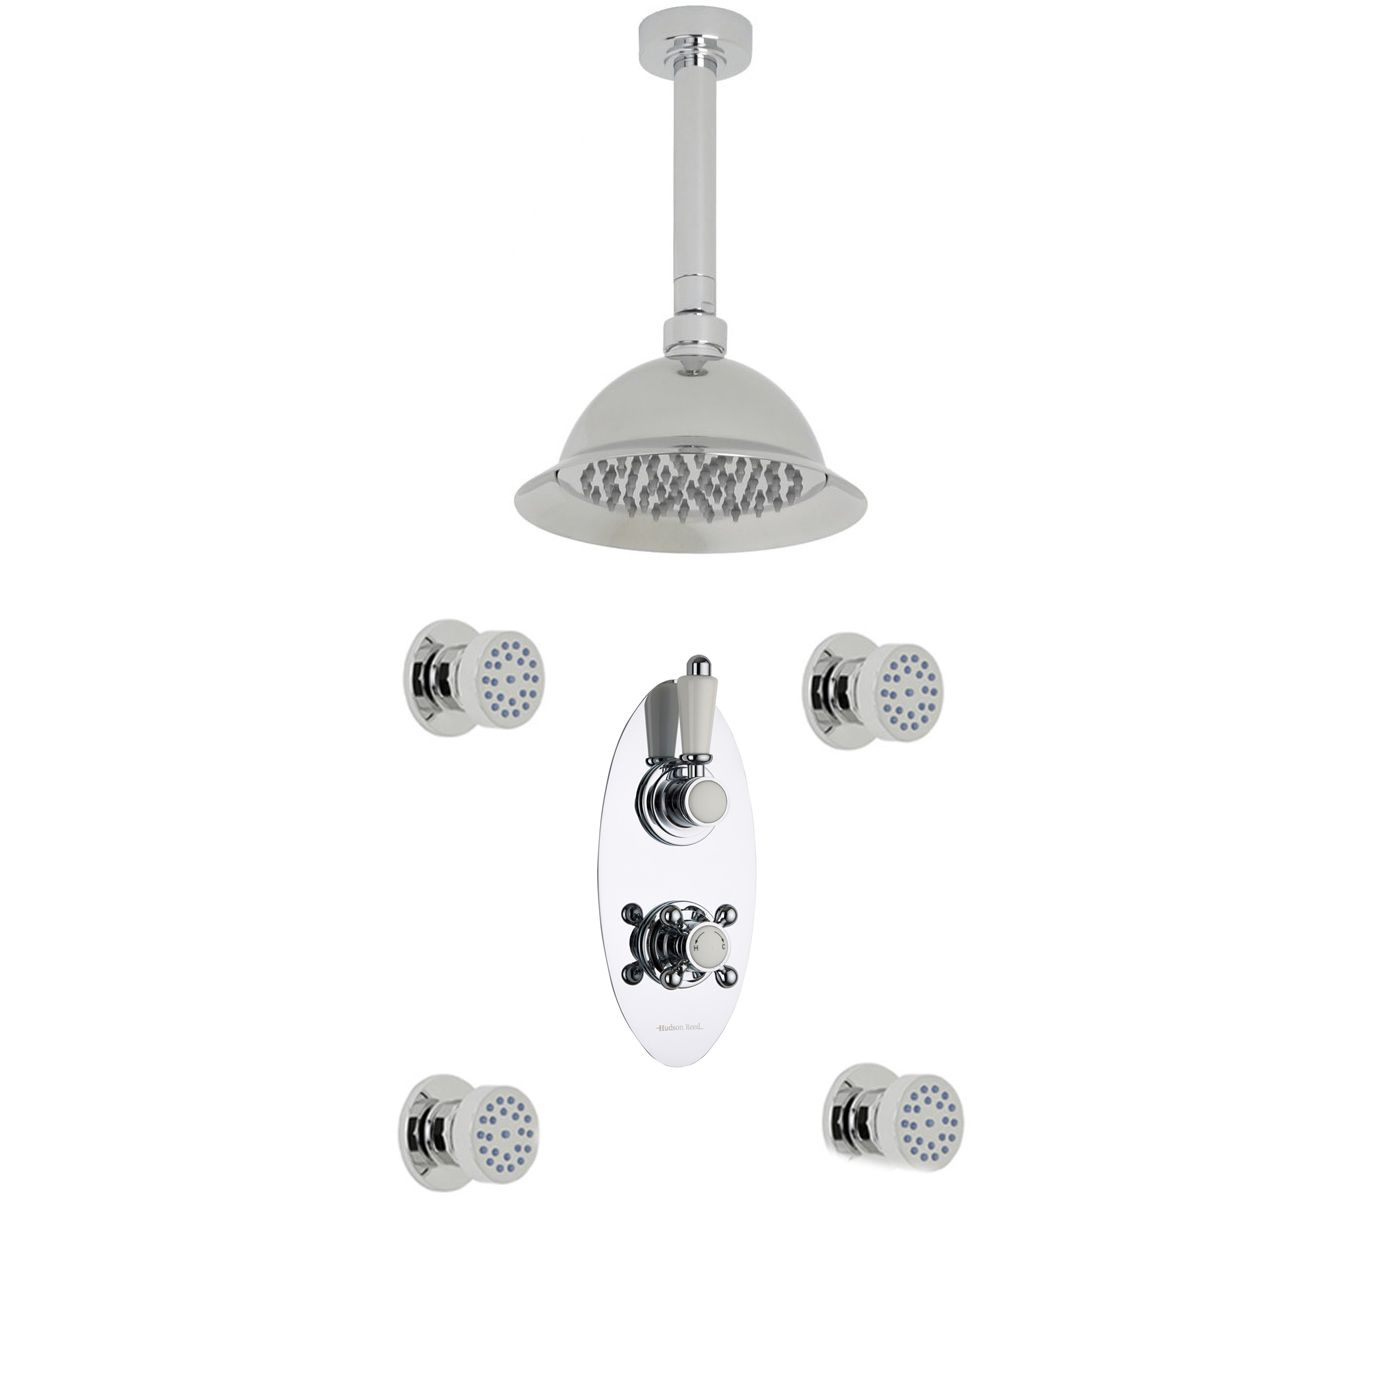 "Traditional Thermostatic 2 Outlet Shower System with 8"" Rose with Ceiling Arm & 4 Round Jet Sprays"